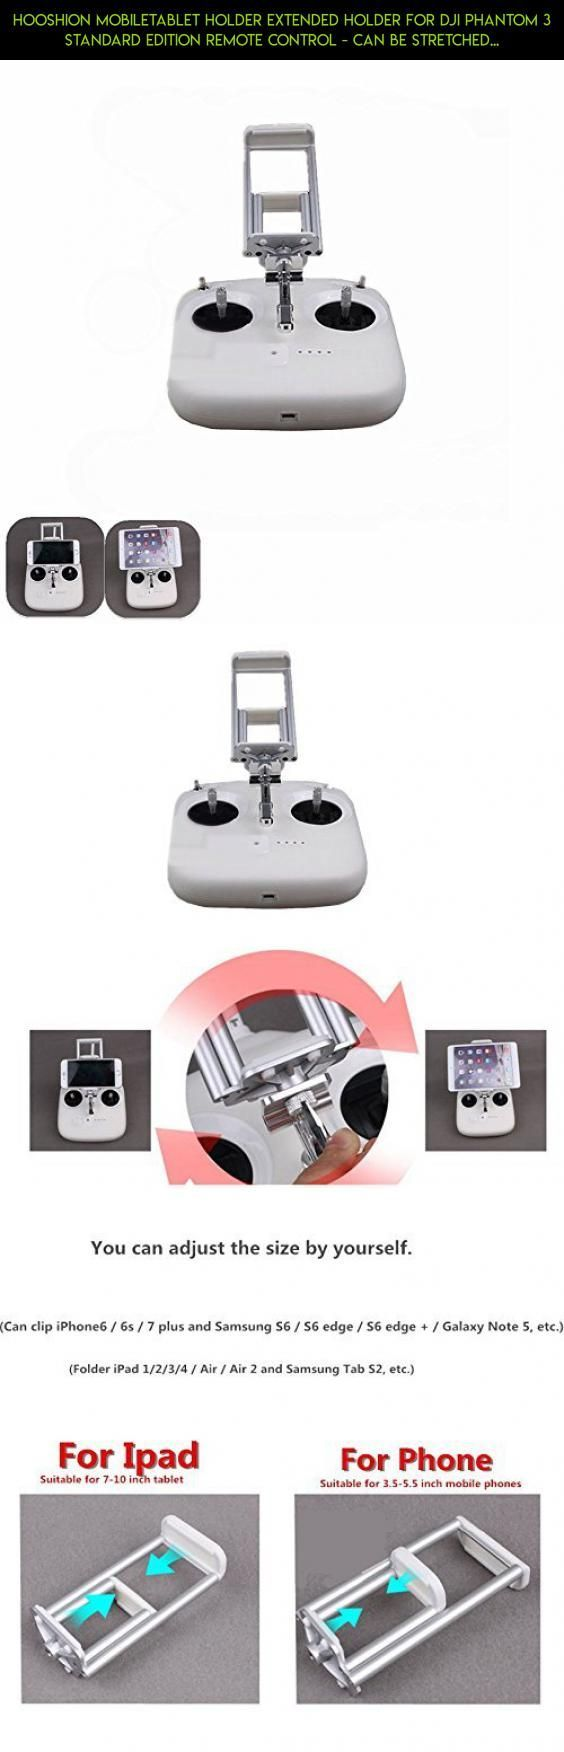 Hooshion MobileTablet Holder Extended Holder for DJI Phantom 3 Standard Edition Remote Control - Can be stretched clip #products #phantom #gadgets #kit #parts #technology #tech #3 #camera #racing #dji #plans #shopping #drone #edition #standard #fpv